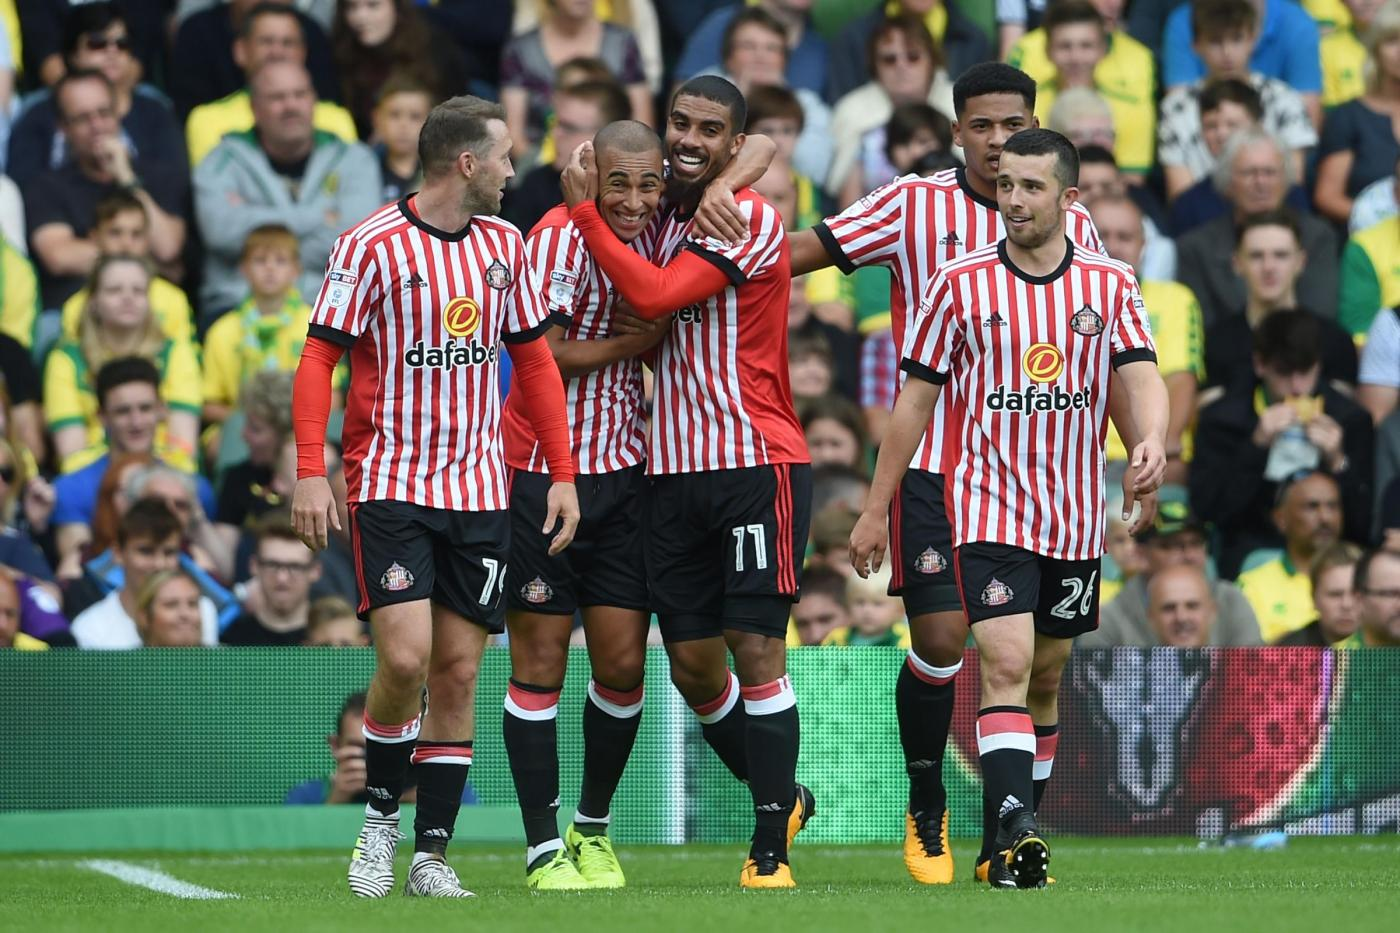 Pronostico Sunderland-Lincoln 4 gennaio: le quote di League One